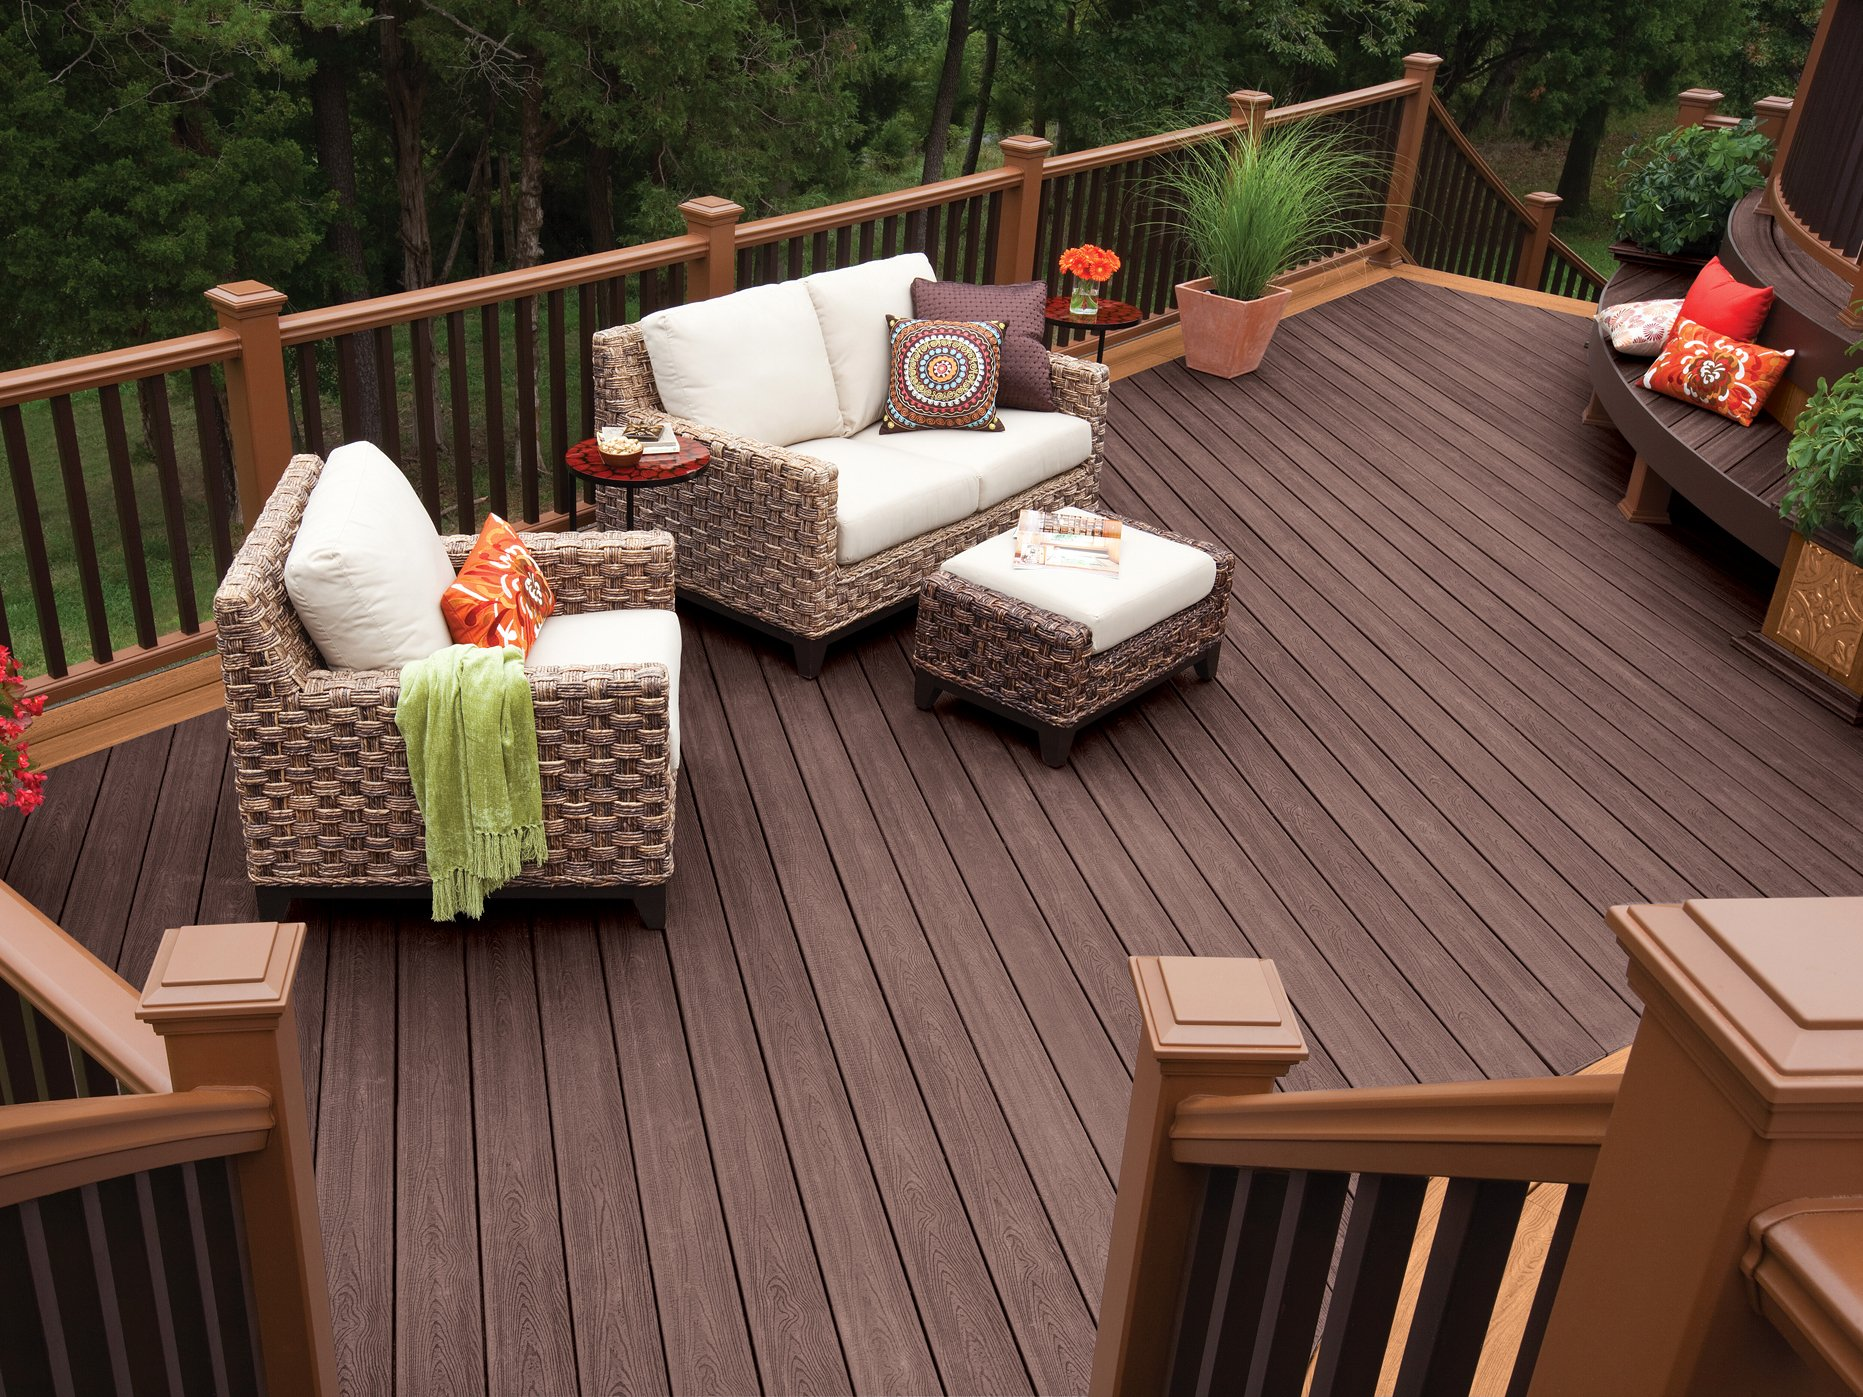 Deck Builders in Cedar Rapids, IA